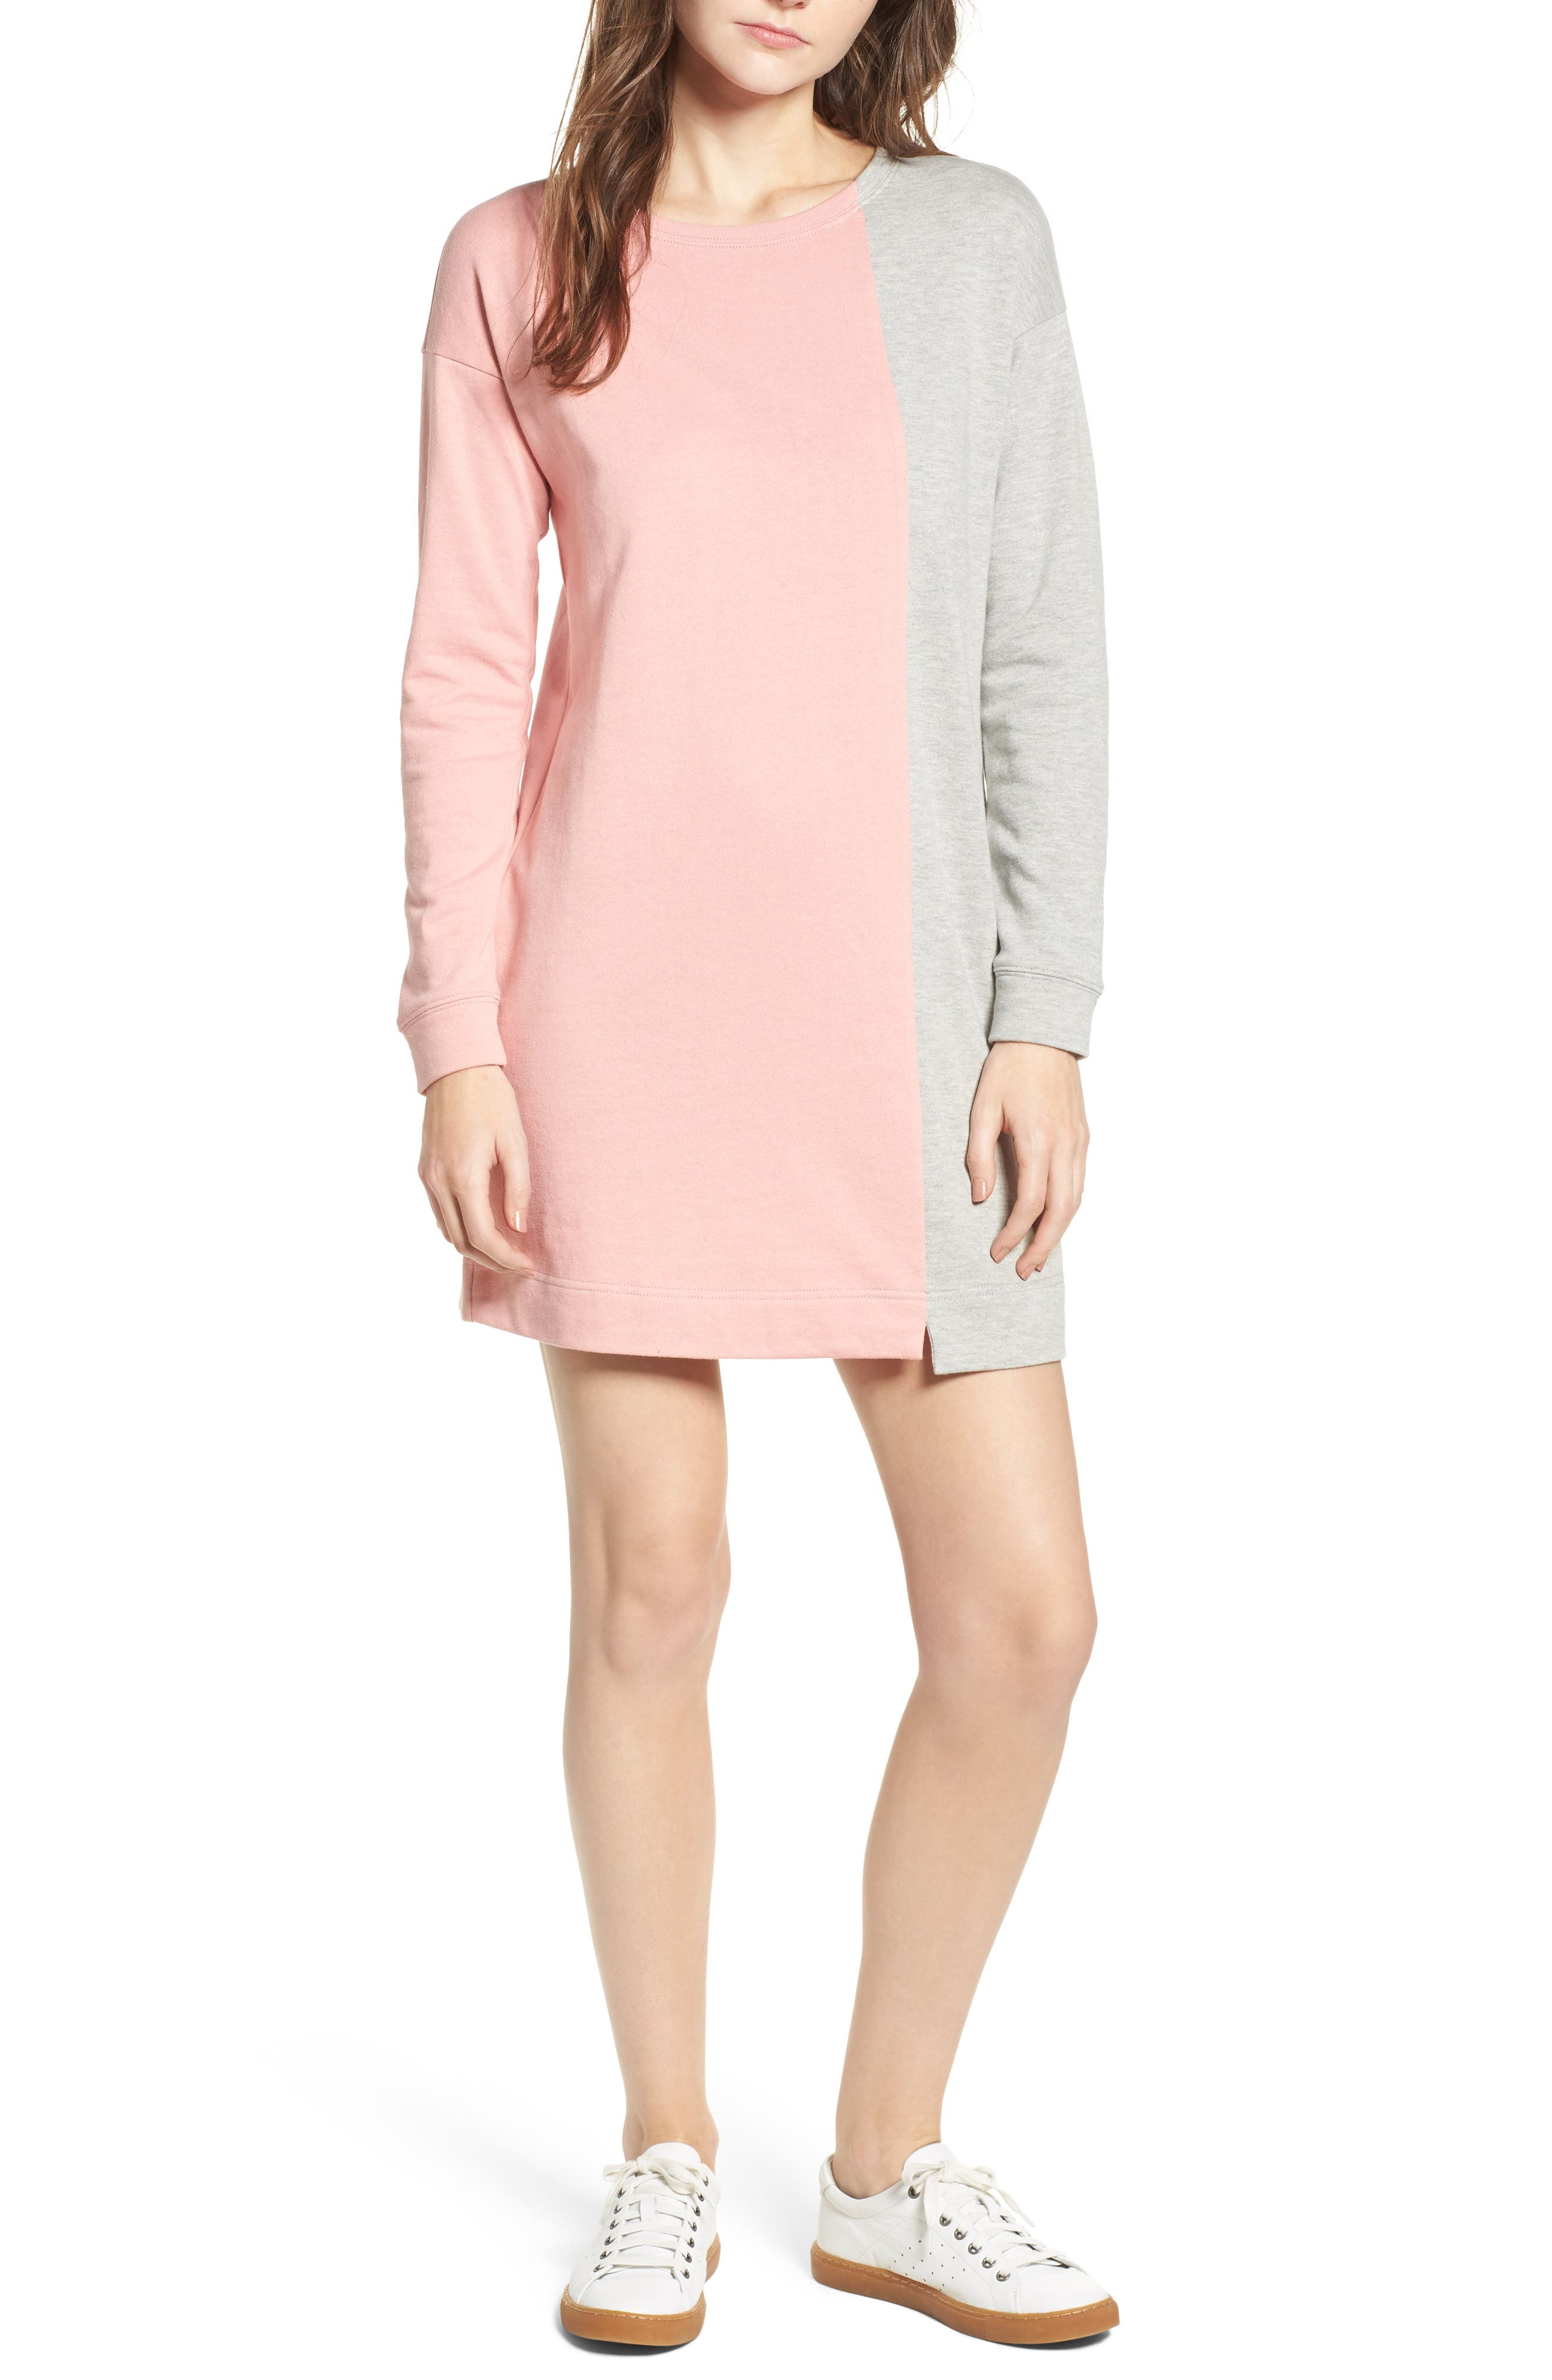 Main Image - Socialite Colorblock Sweatshirt Dress